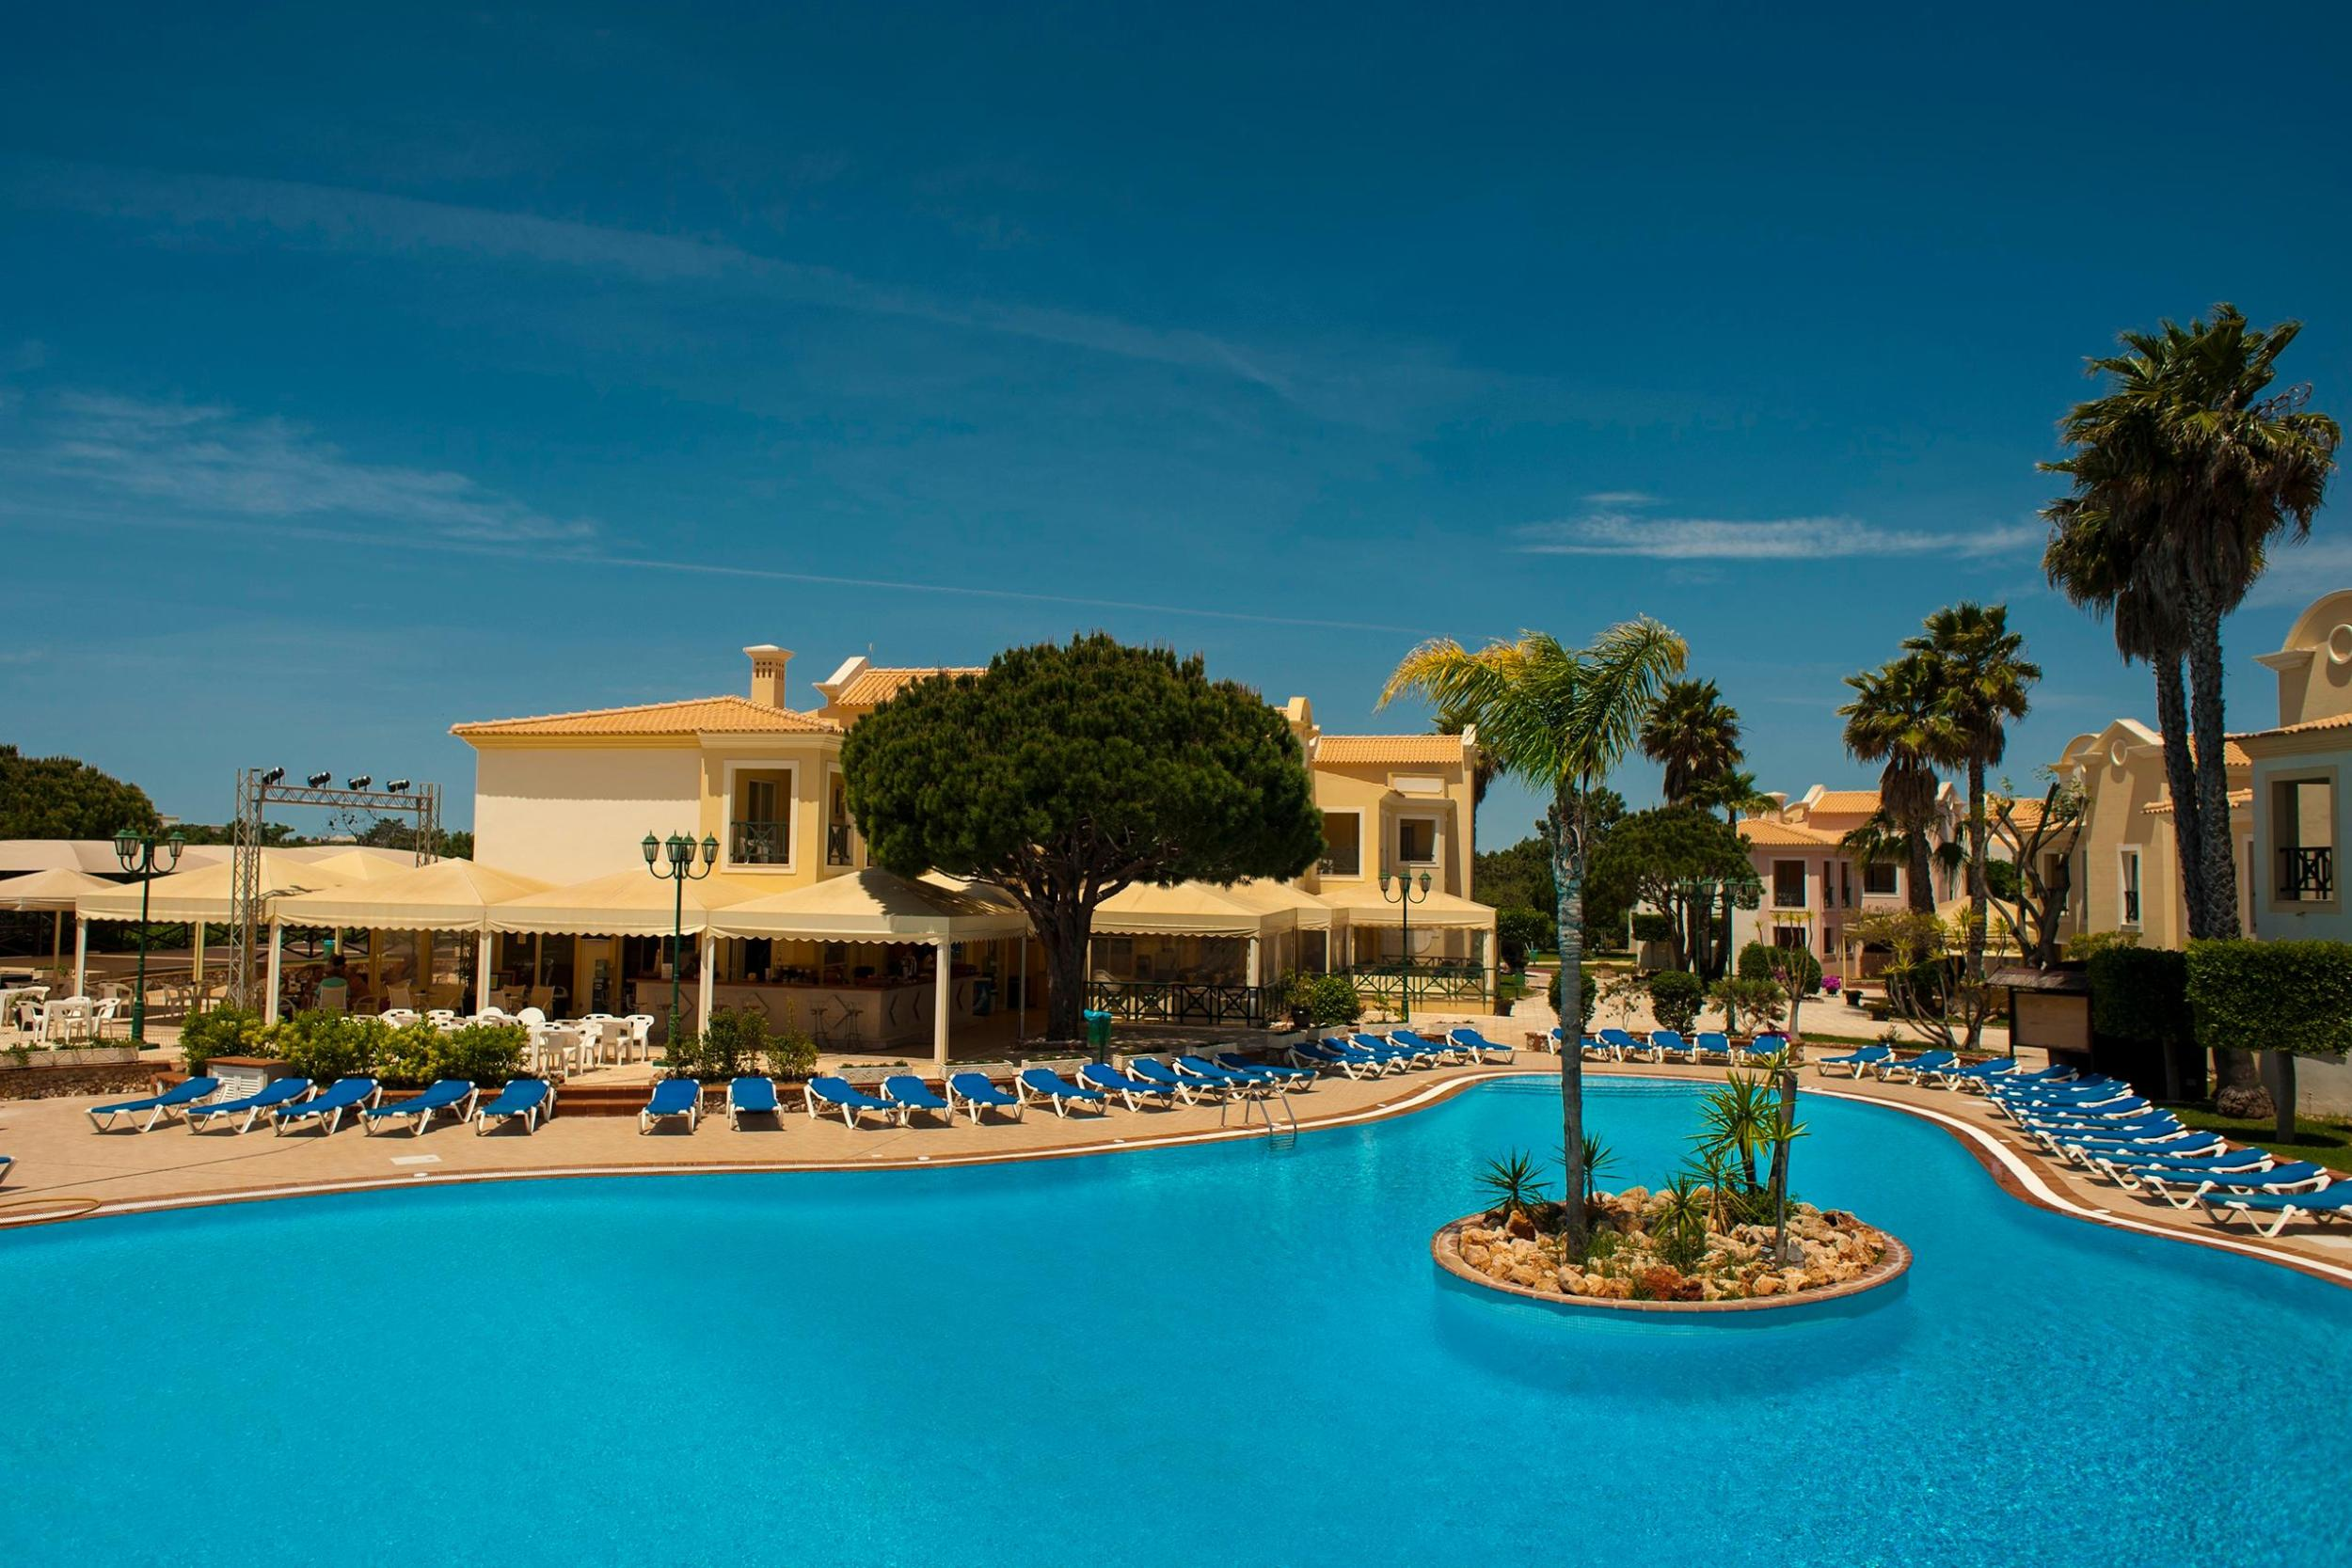 Adriana Beach Club Hotel Resort in Albufeira, Algarve, Portugal